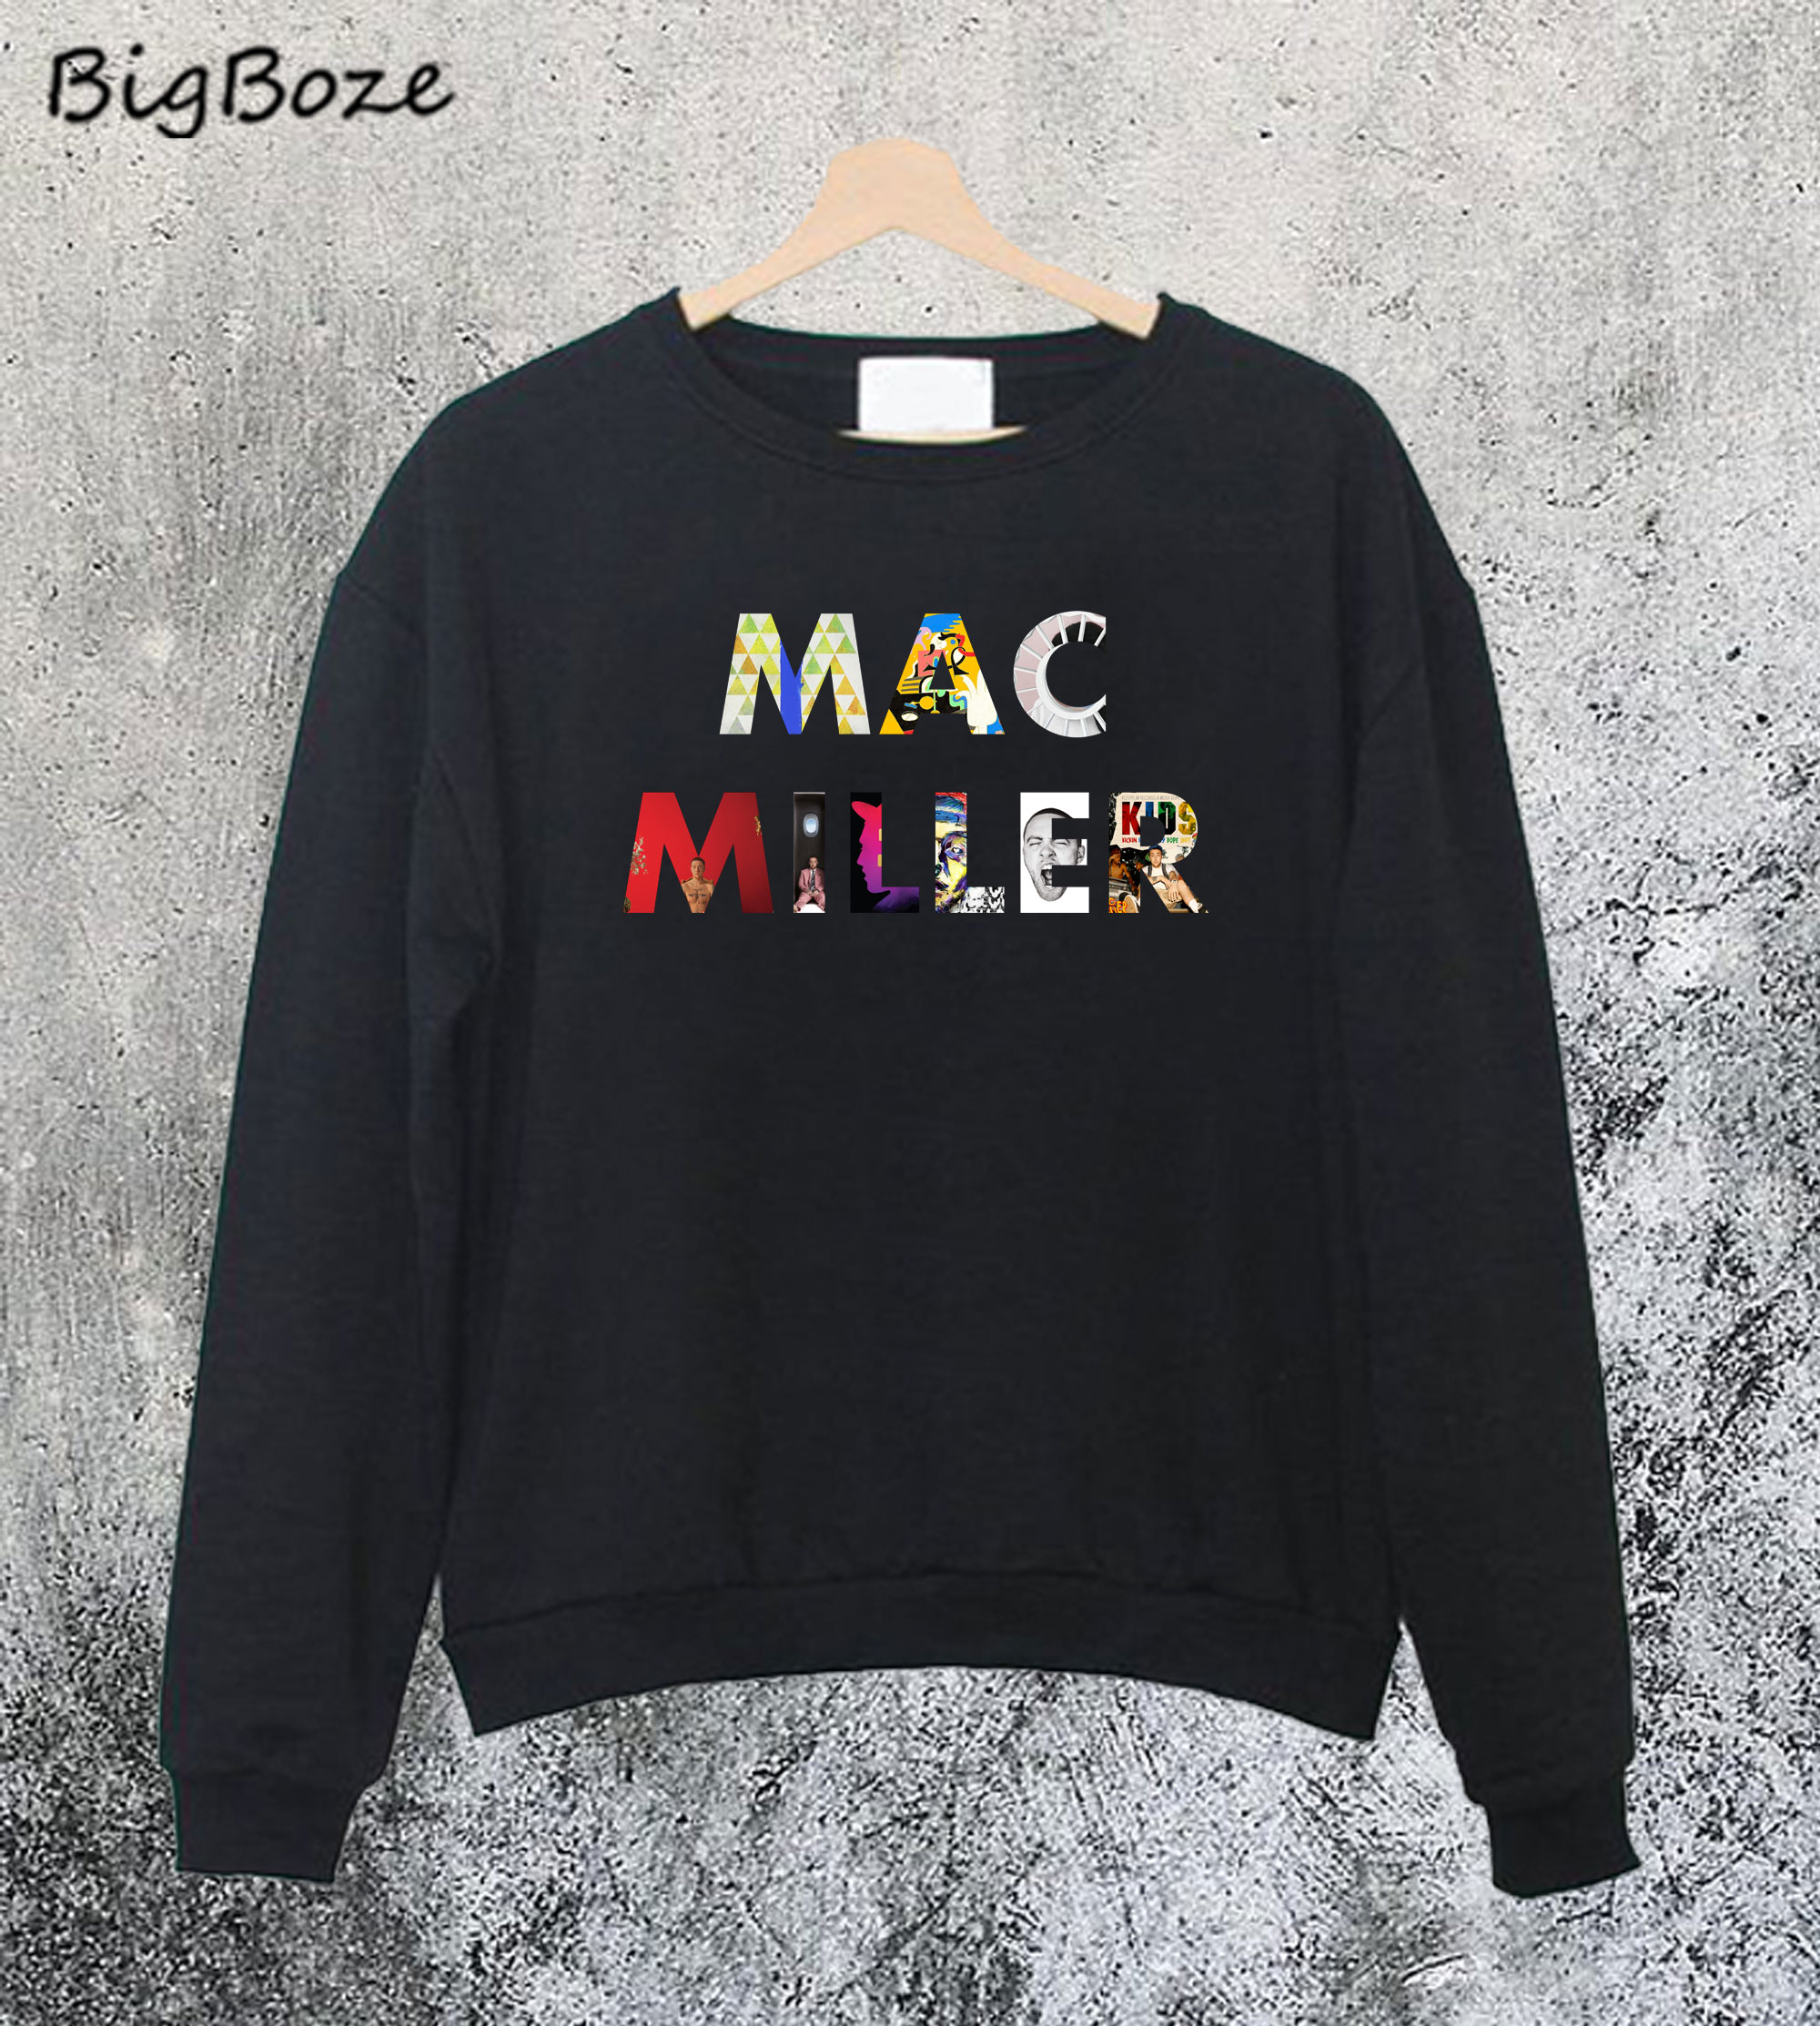 Mac Miller The Album Sweatshirt